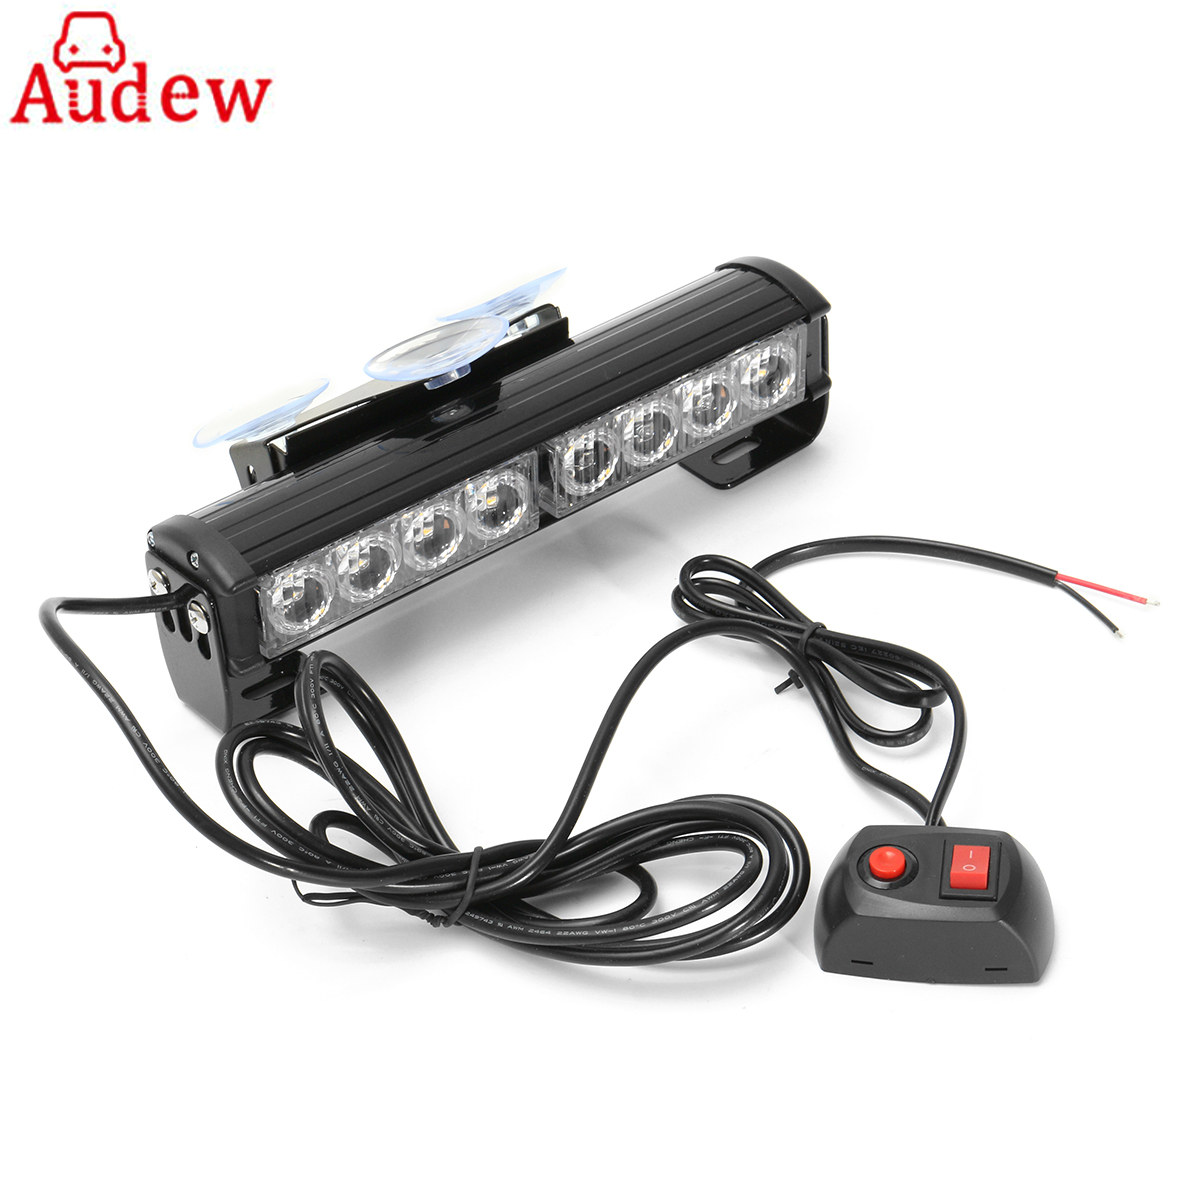 1Pcs 9.5Inch Car LED Work Light Bar Spotlight Flood Lamp Driving Fog Offroad LED Work Car Lights 41W top quality for hp laptop mainboard 592811 001 cq42 cq62 laptop motherboard 100% tested 60 days warranty 636373 001